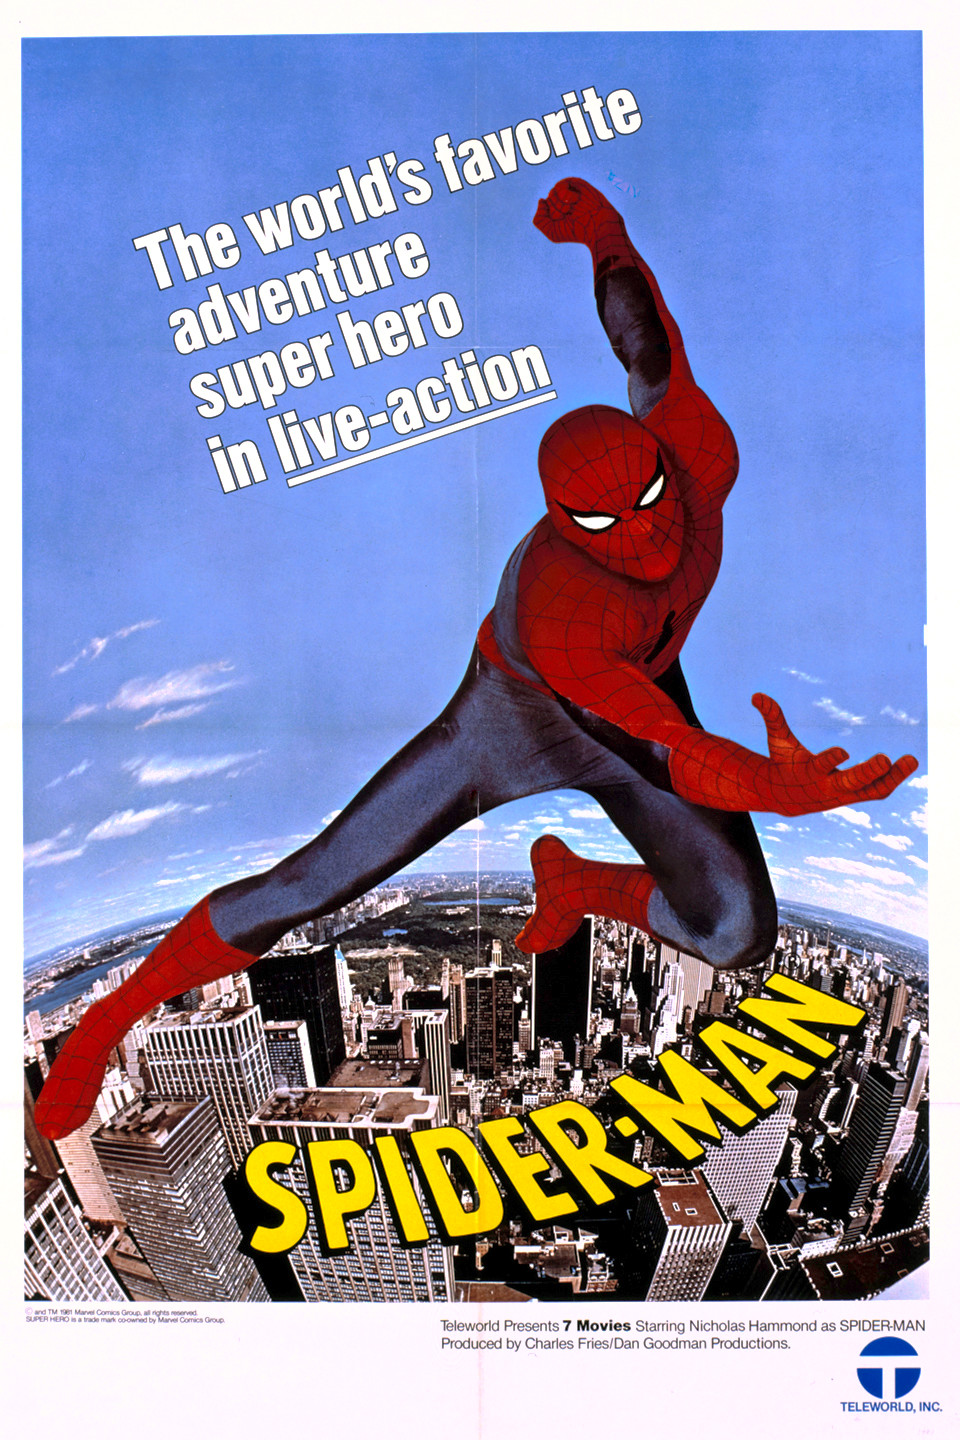 Spider-Man (1977 film)